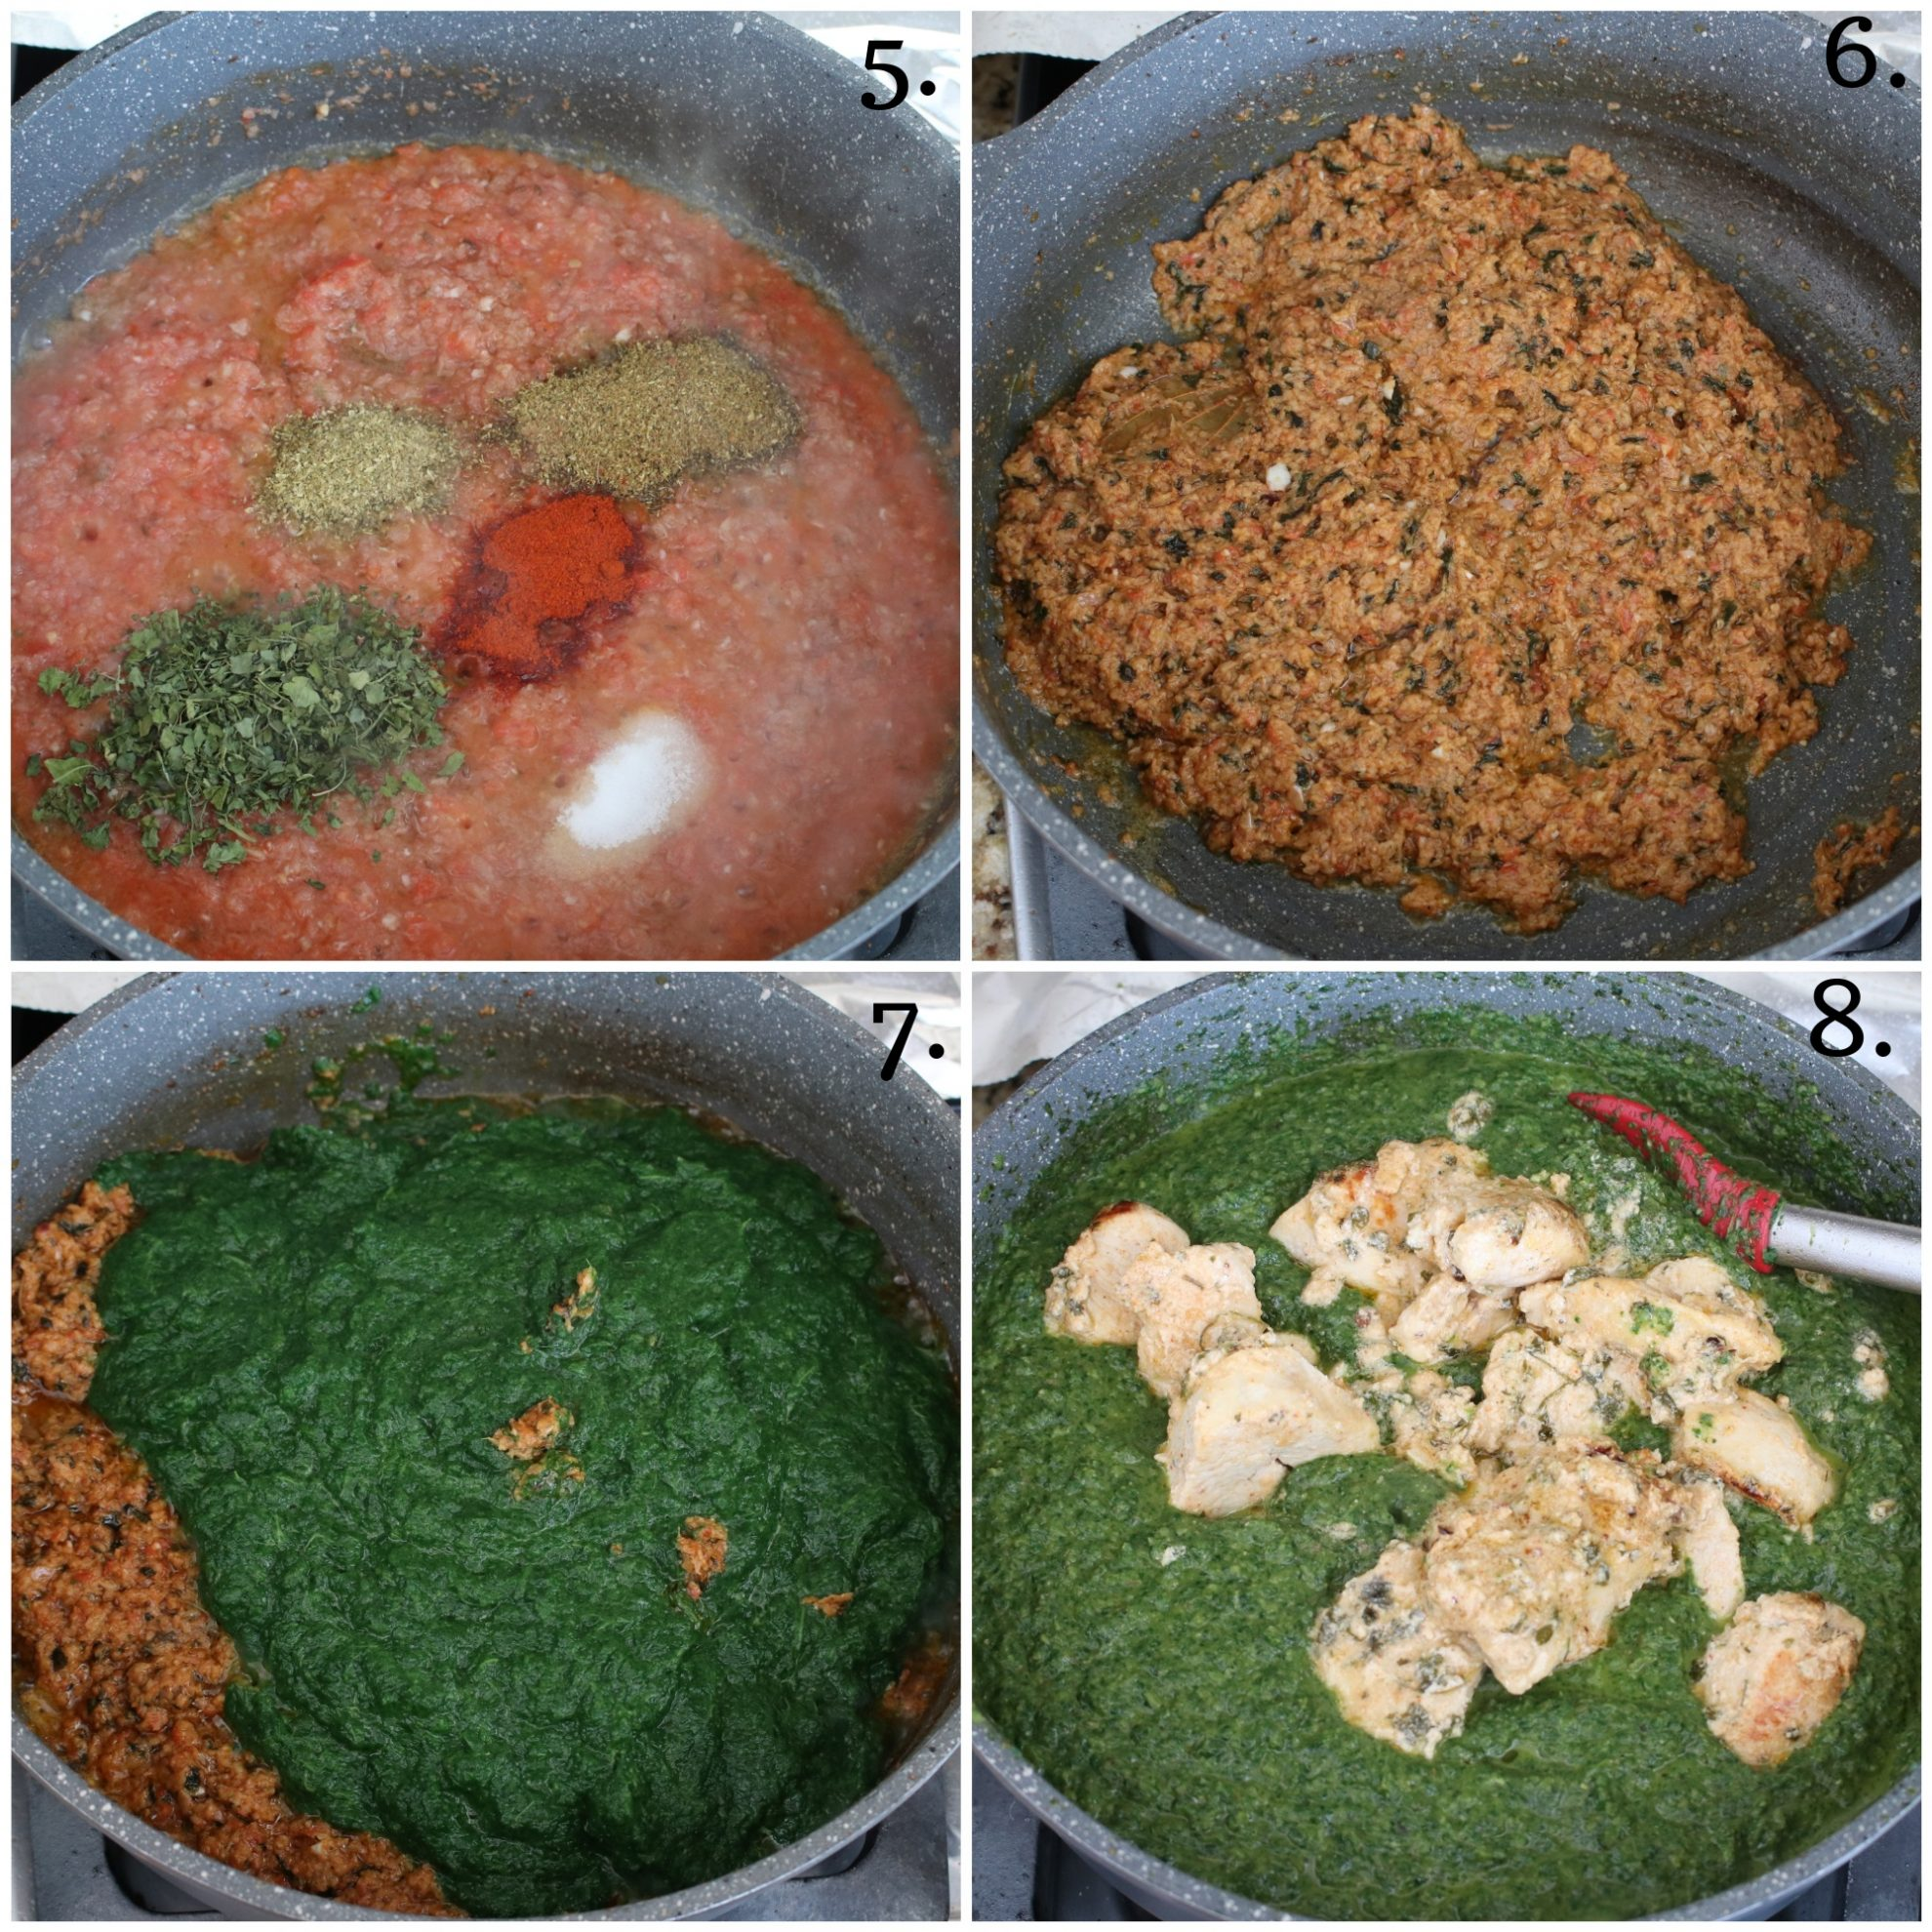 The base sauce of Palak Murgh